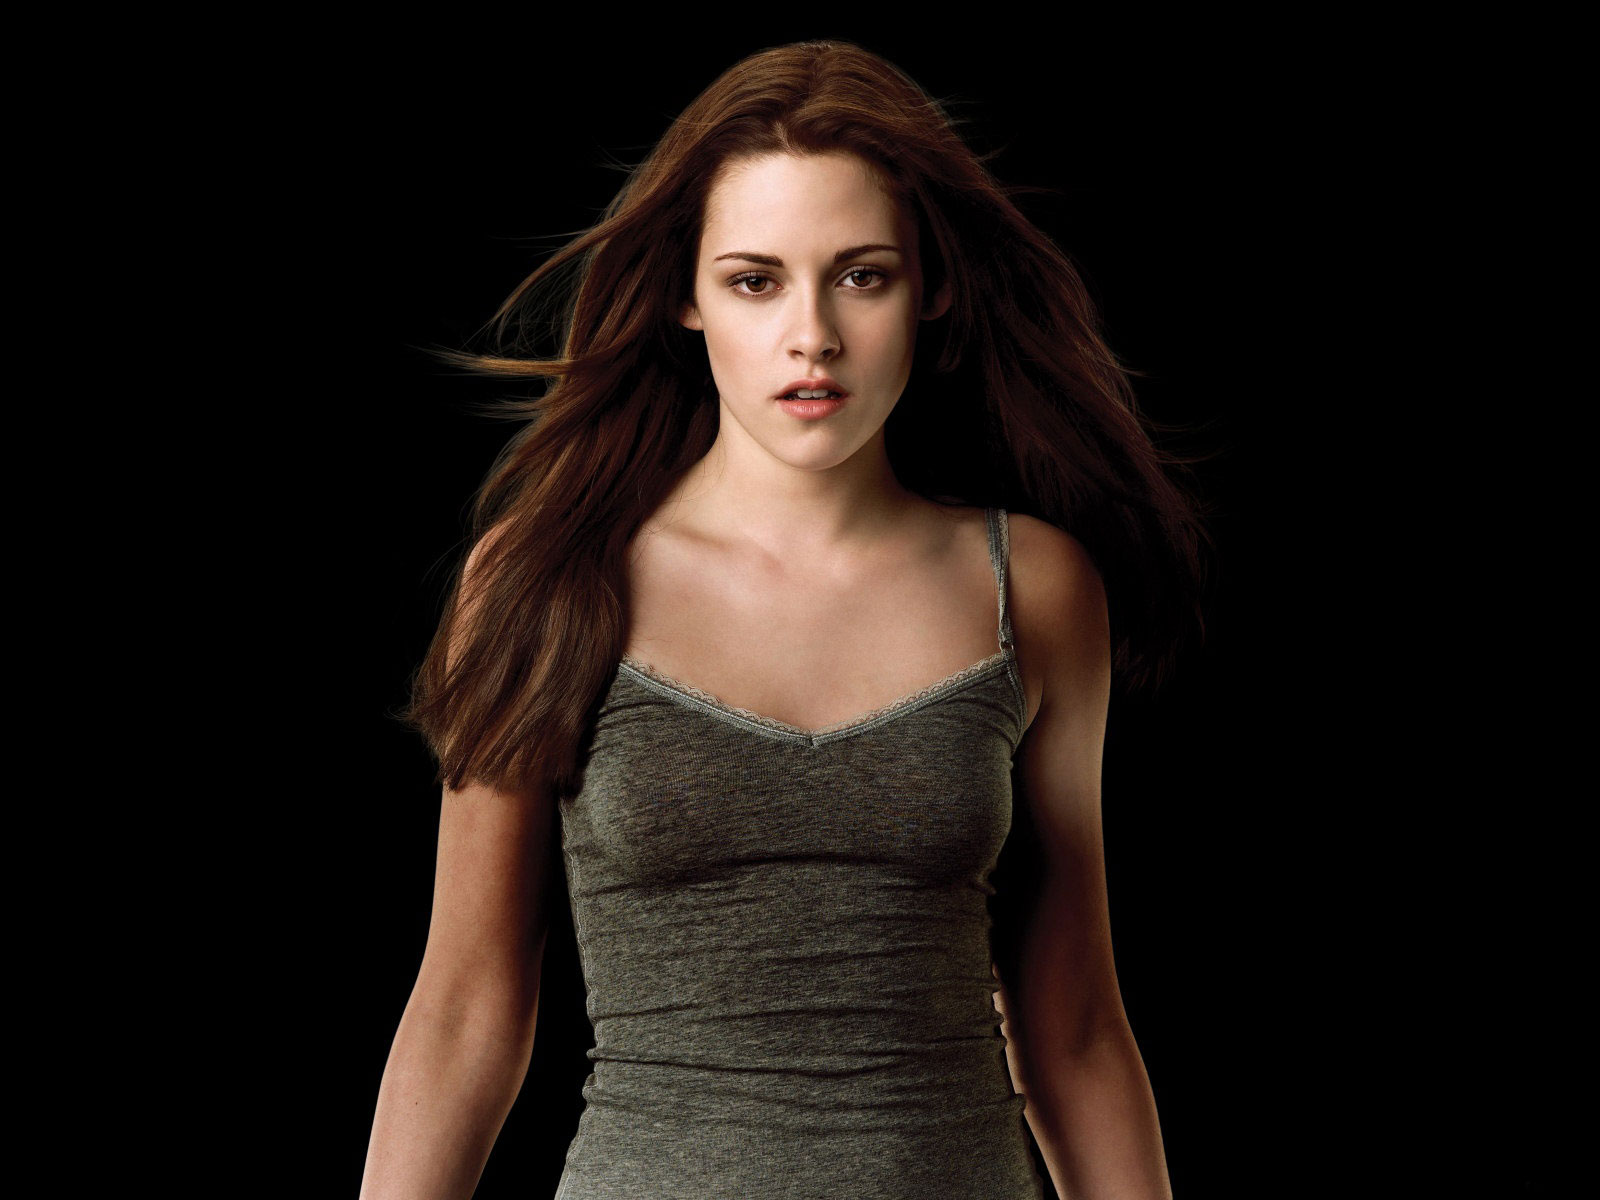 Kristen Stewart Twilight Actress wallpaper